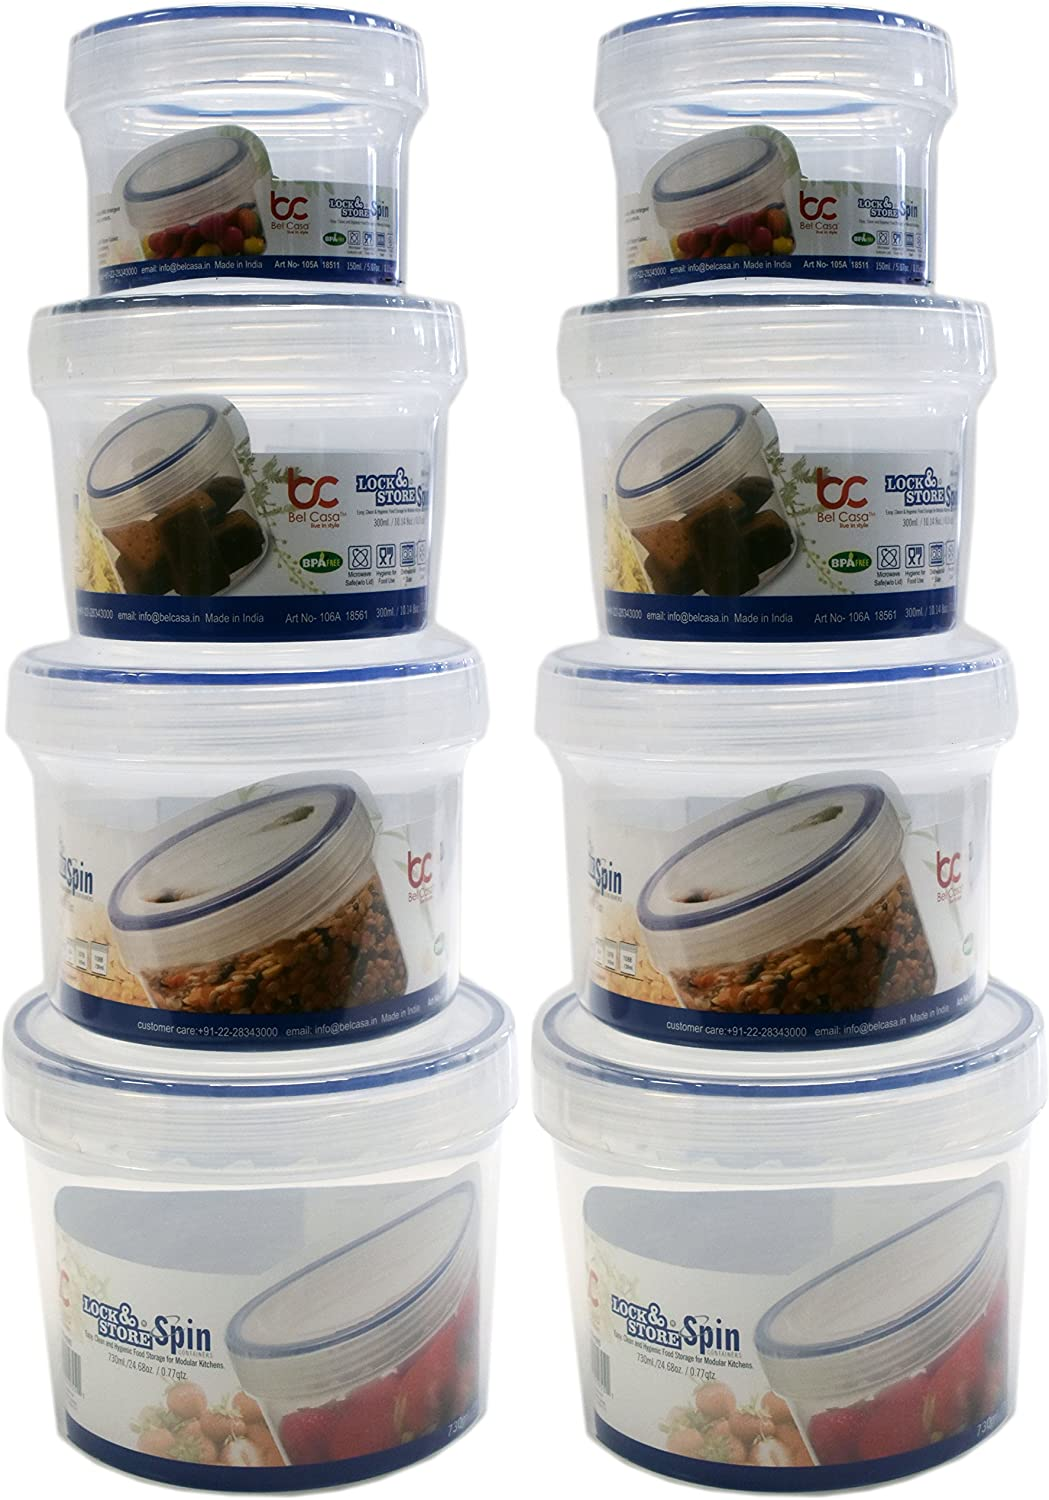 Set of 8 Lock & Store Spin Food Storage Containers! 4 Assorted Sizes - Spin Close Top - Microwave - Dishwasher - Freezer Safe - BPA FREE - Easy, Clean and Hygienic Food Storage for Modular Homes! (8)